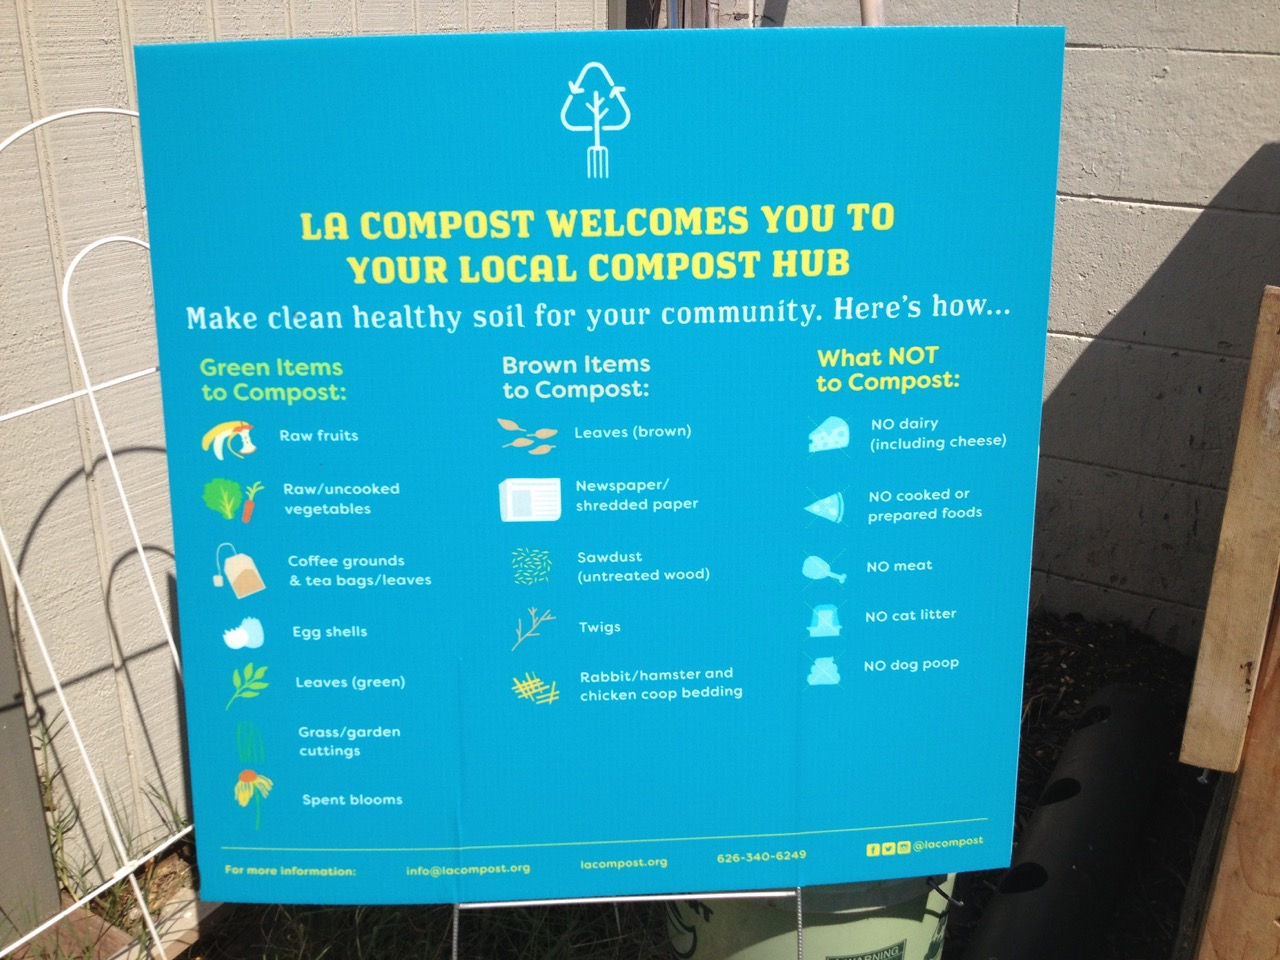 Make Soil, Make Laws: How the California Community Compost Coalition is shaping compost policy